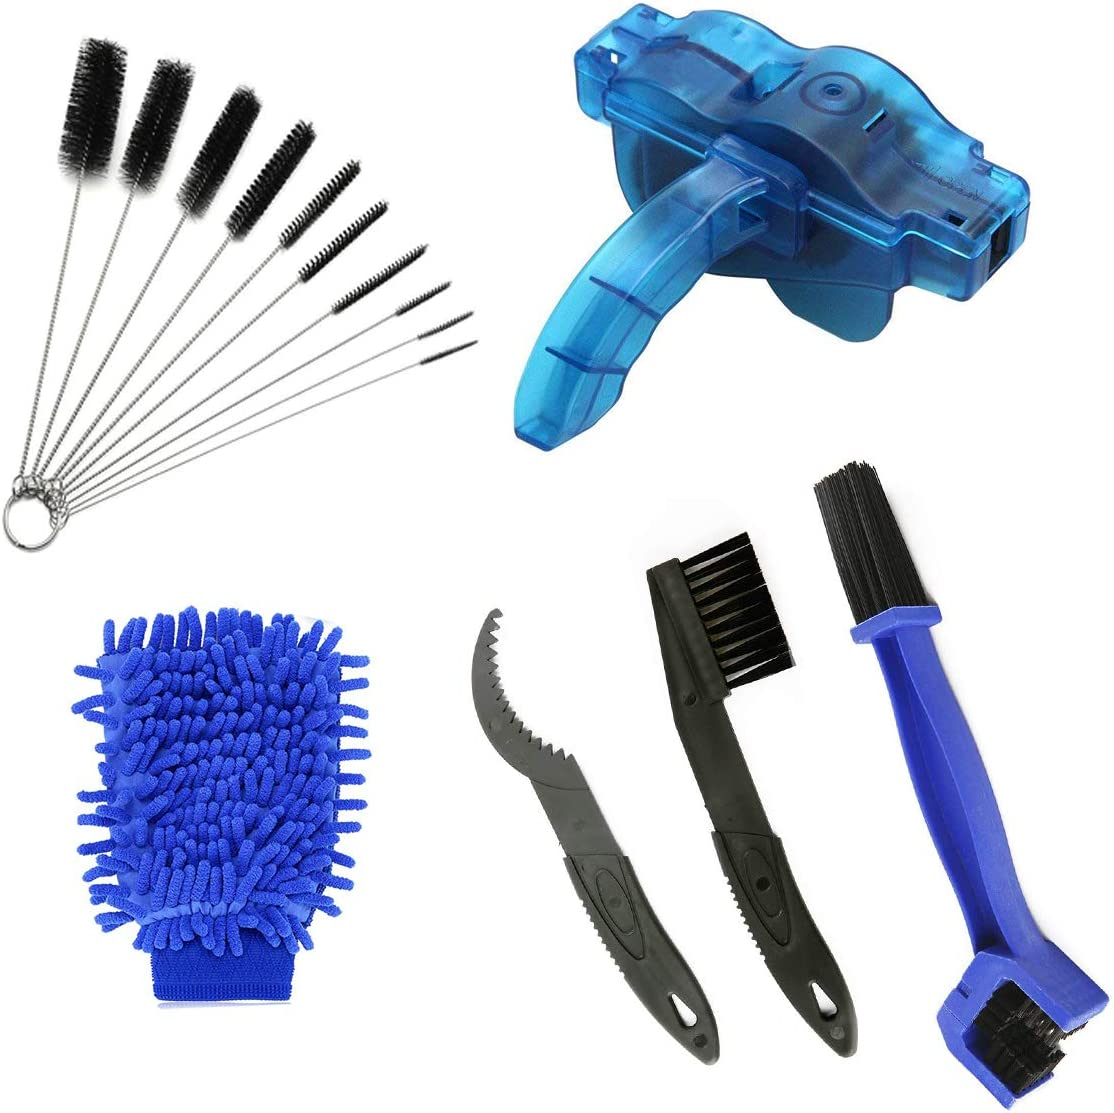 AHCSMRE Bike Chain Cleaning Brush Kit Bicycle MaintenanceWashing Tool Suitable for Mountain, Road, City, Hybrid,BMX Bike and Folding Bike